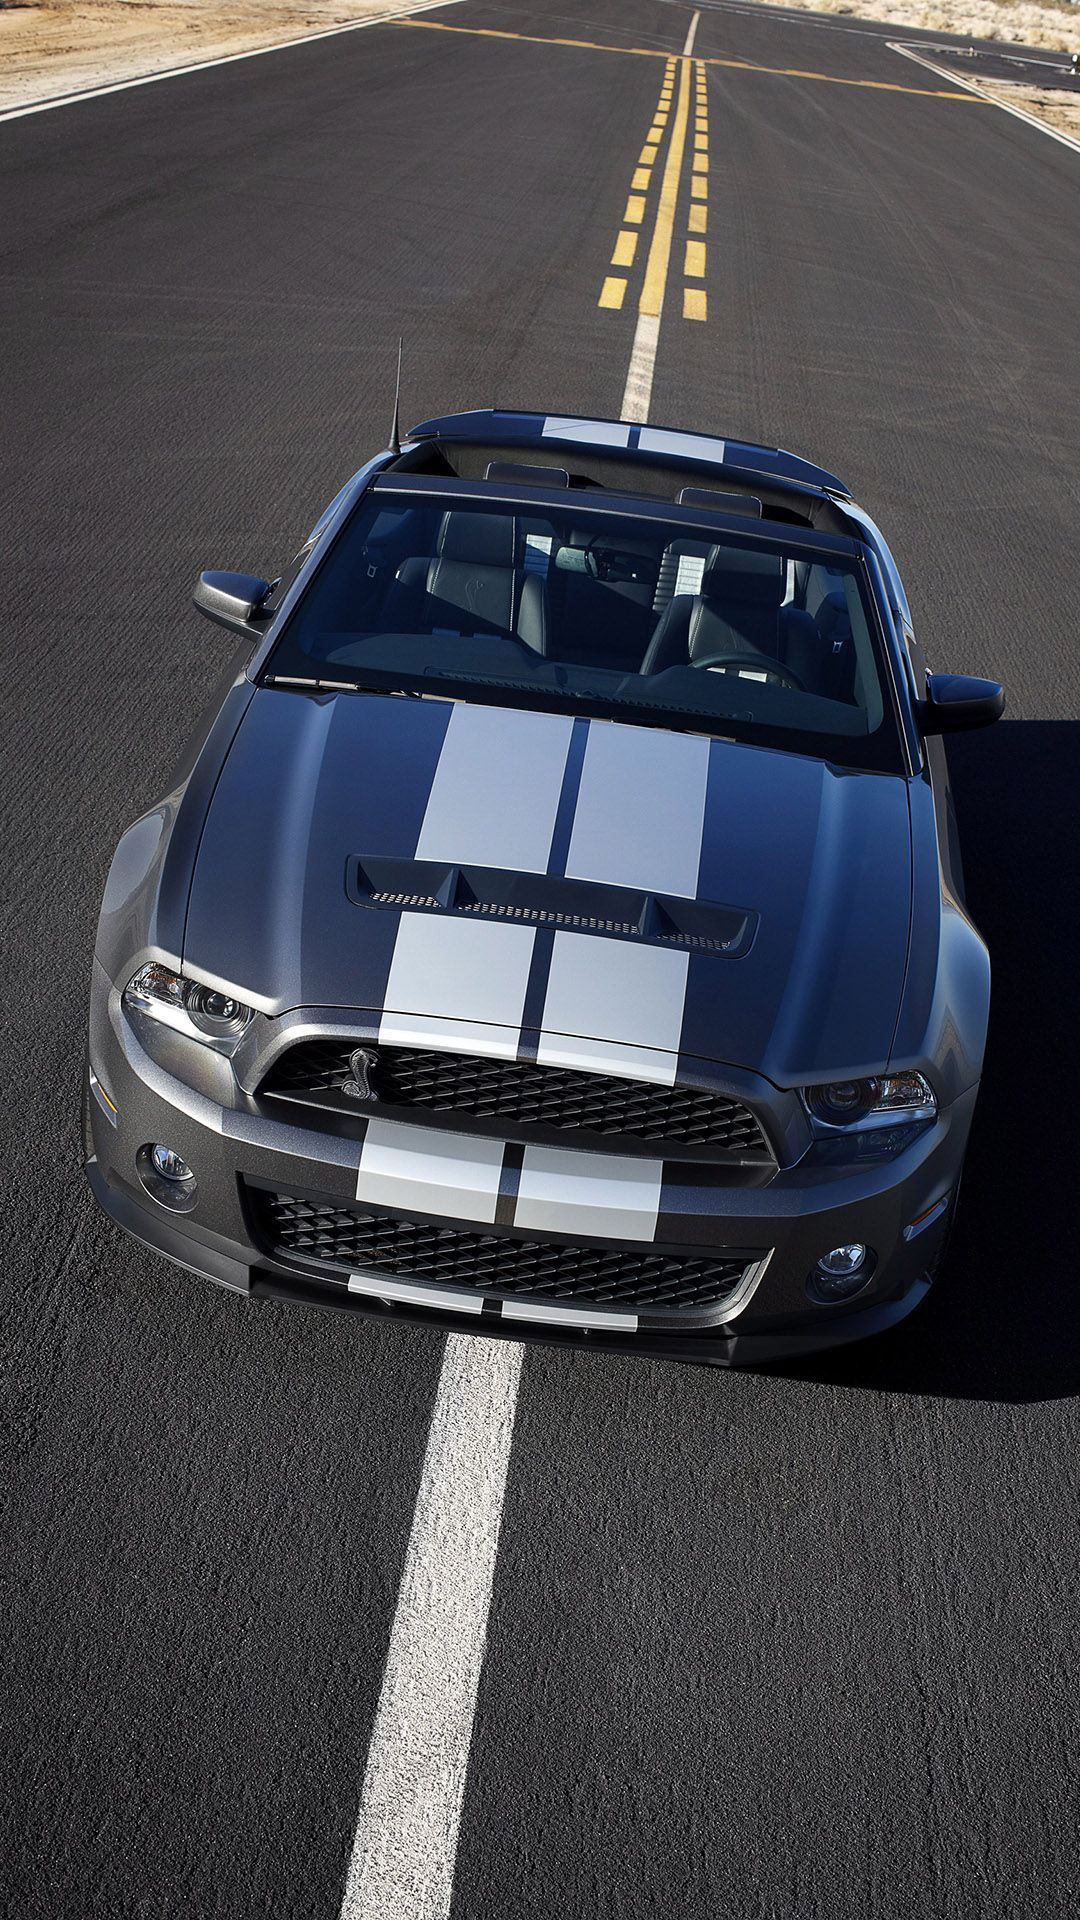 Blue Ford Mustang Shelby GT 500